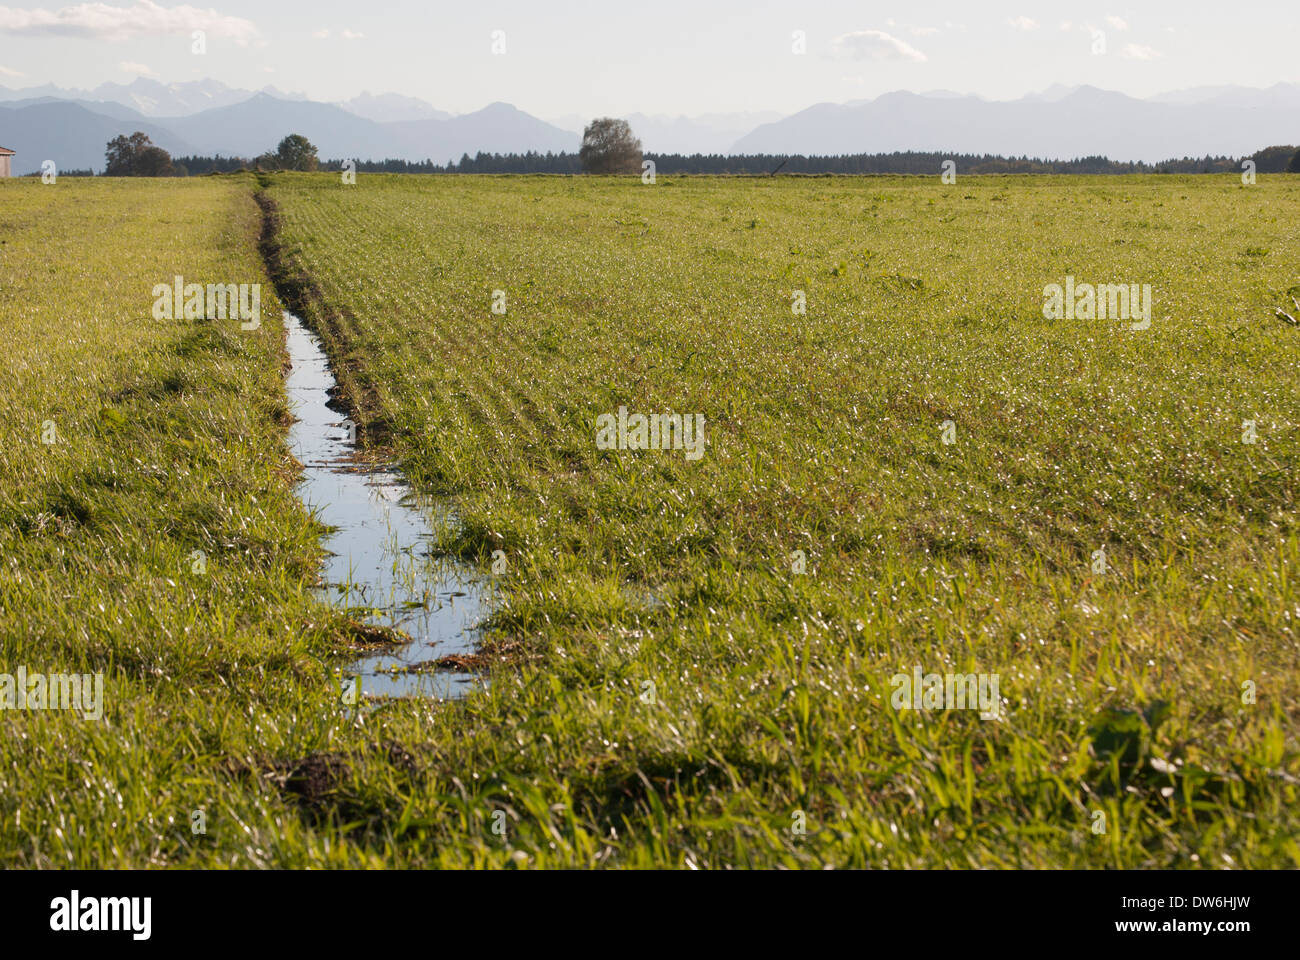 View abundant green farm land with irrigation - Stock Image